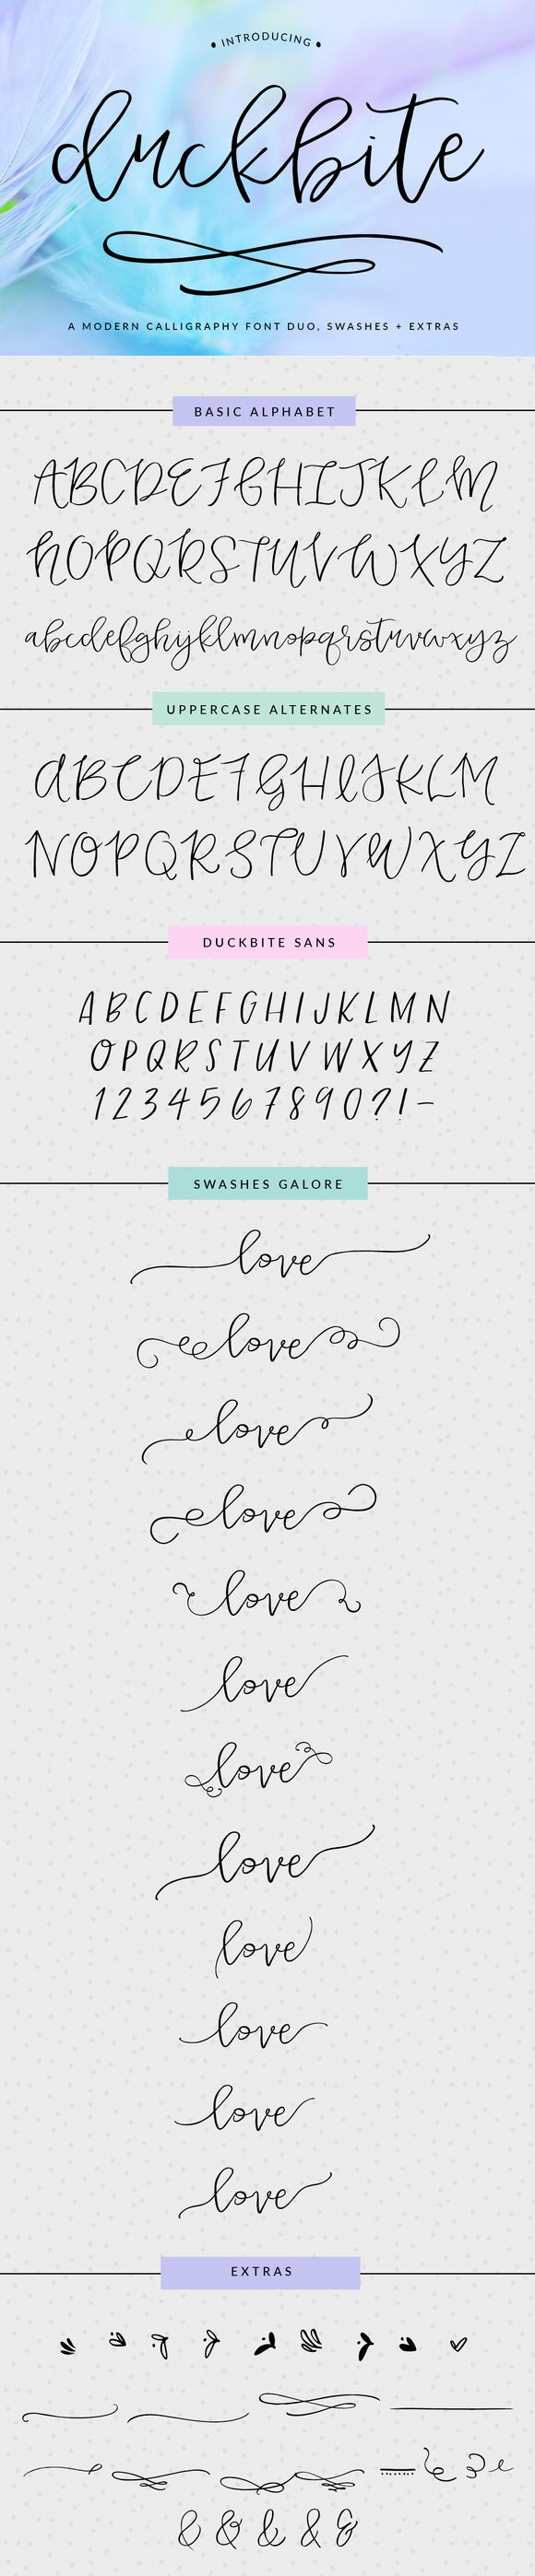 Duckbite Font Family by Angie Makes on Creative Market